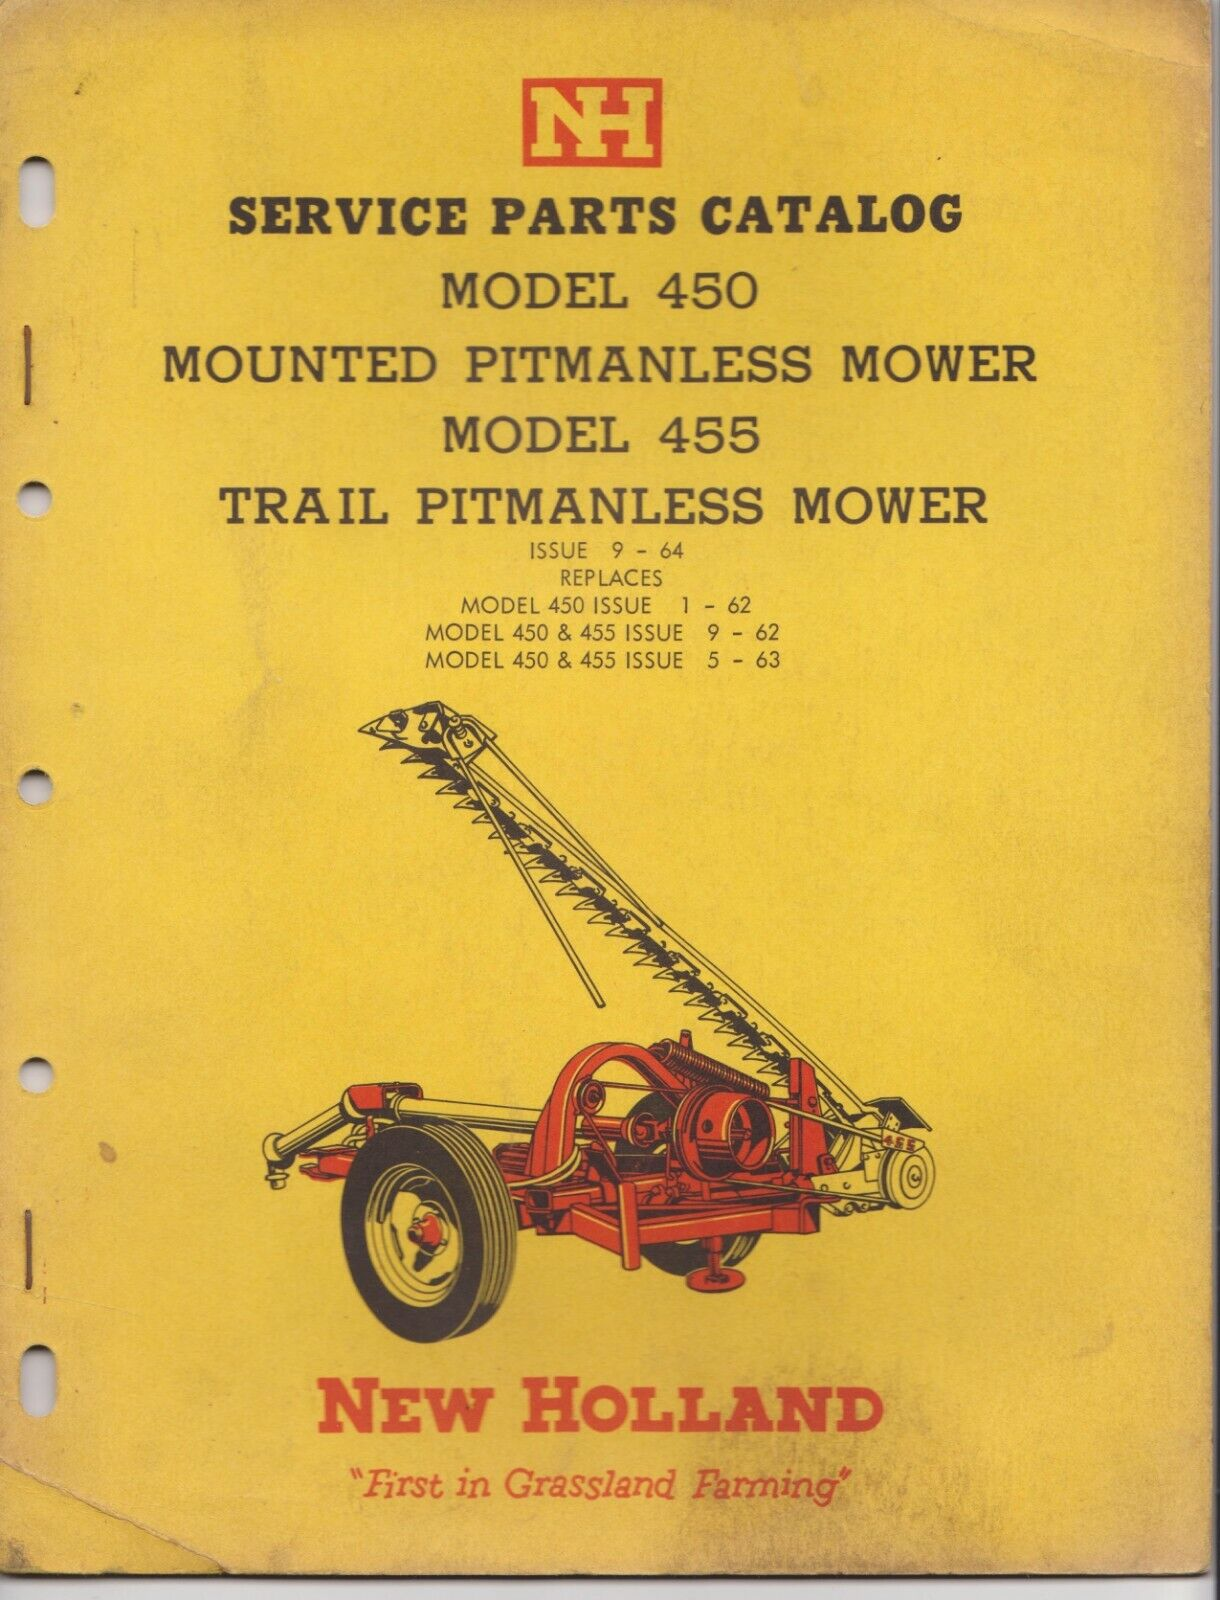 NH New Holland Service Parts Catalog Model 450 455 Pitmanless Mower - $18.90